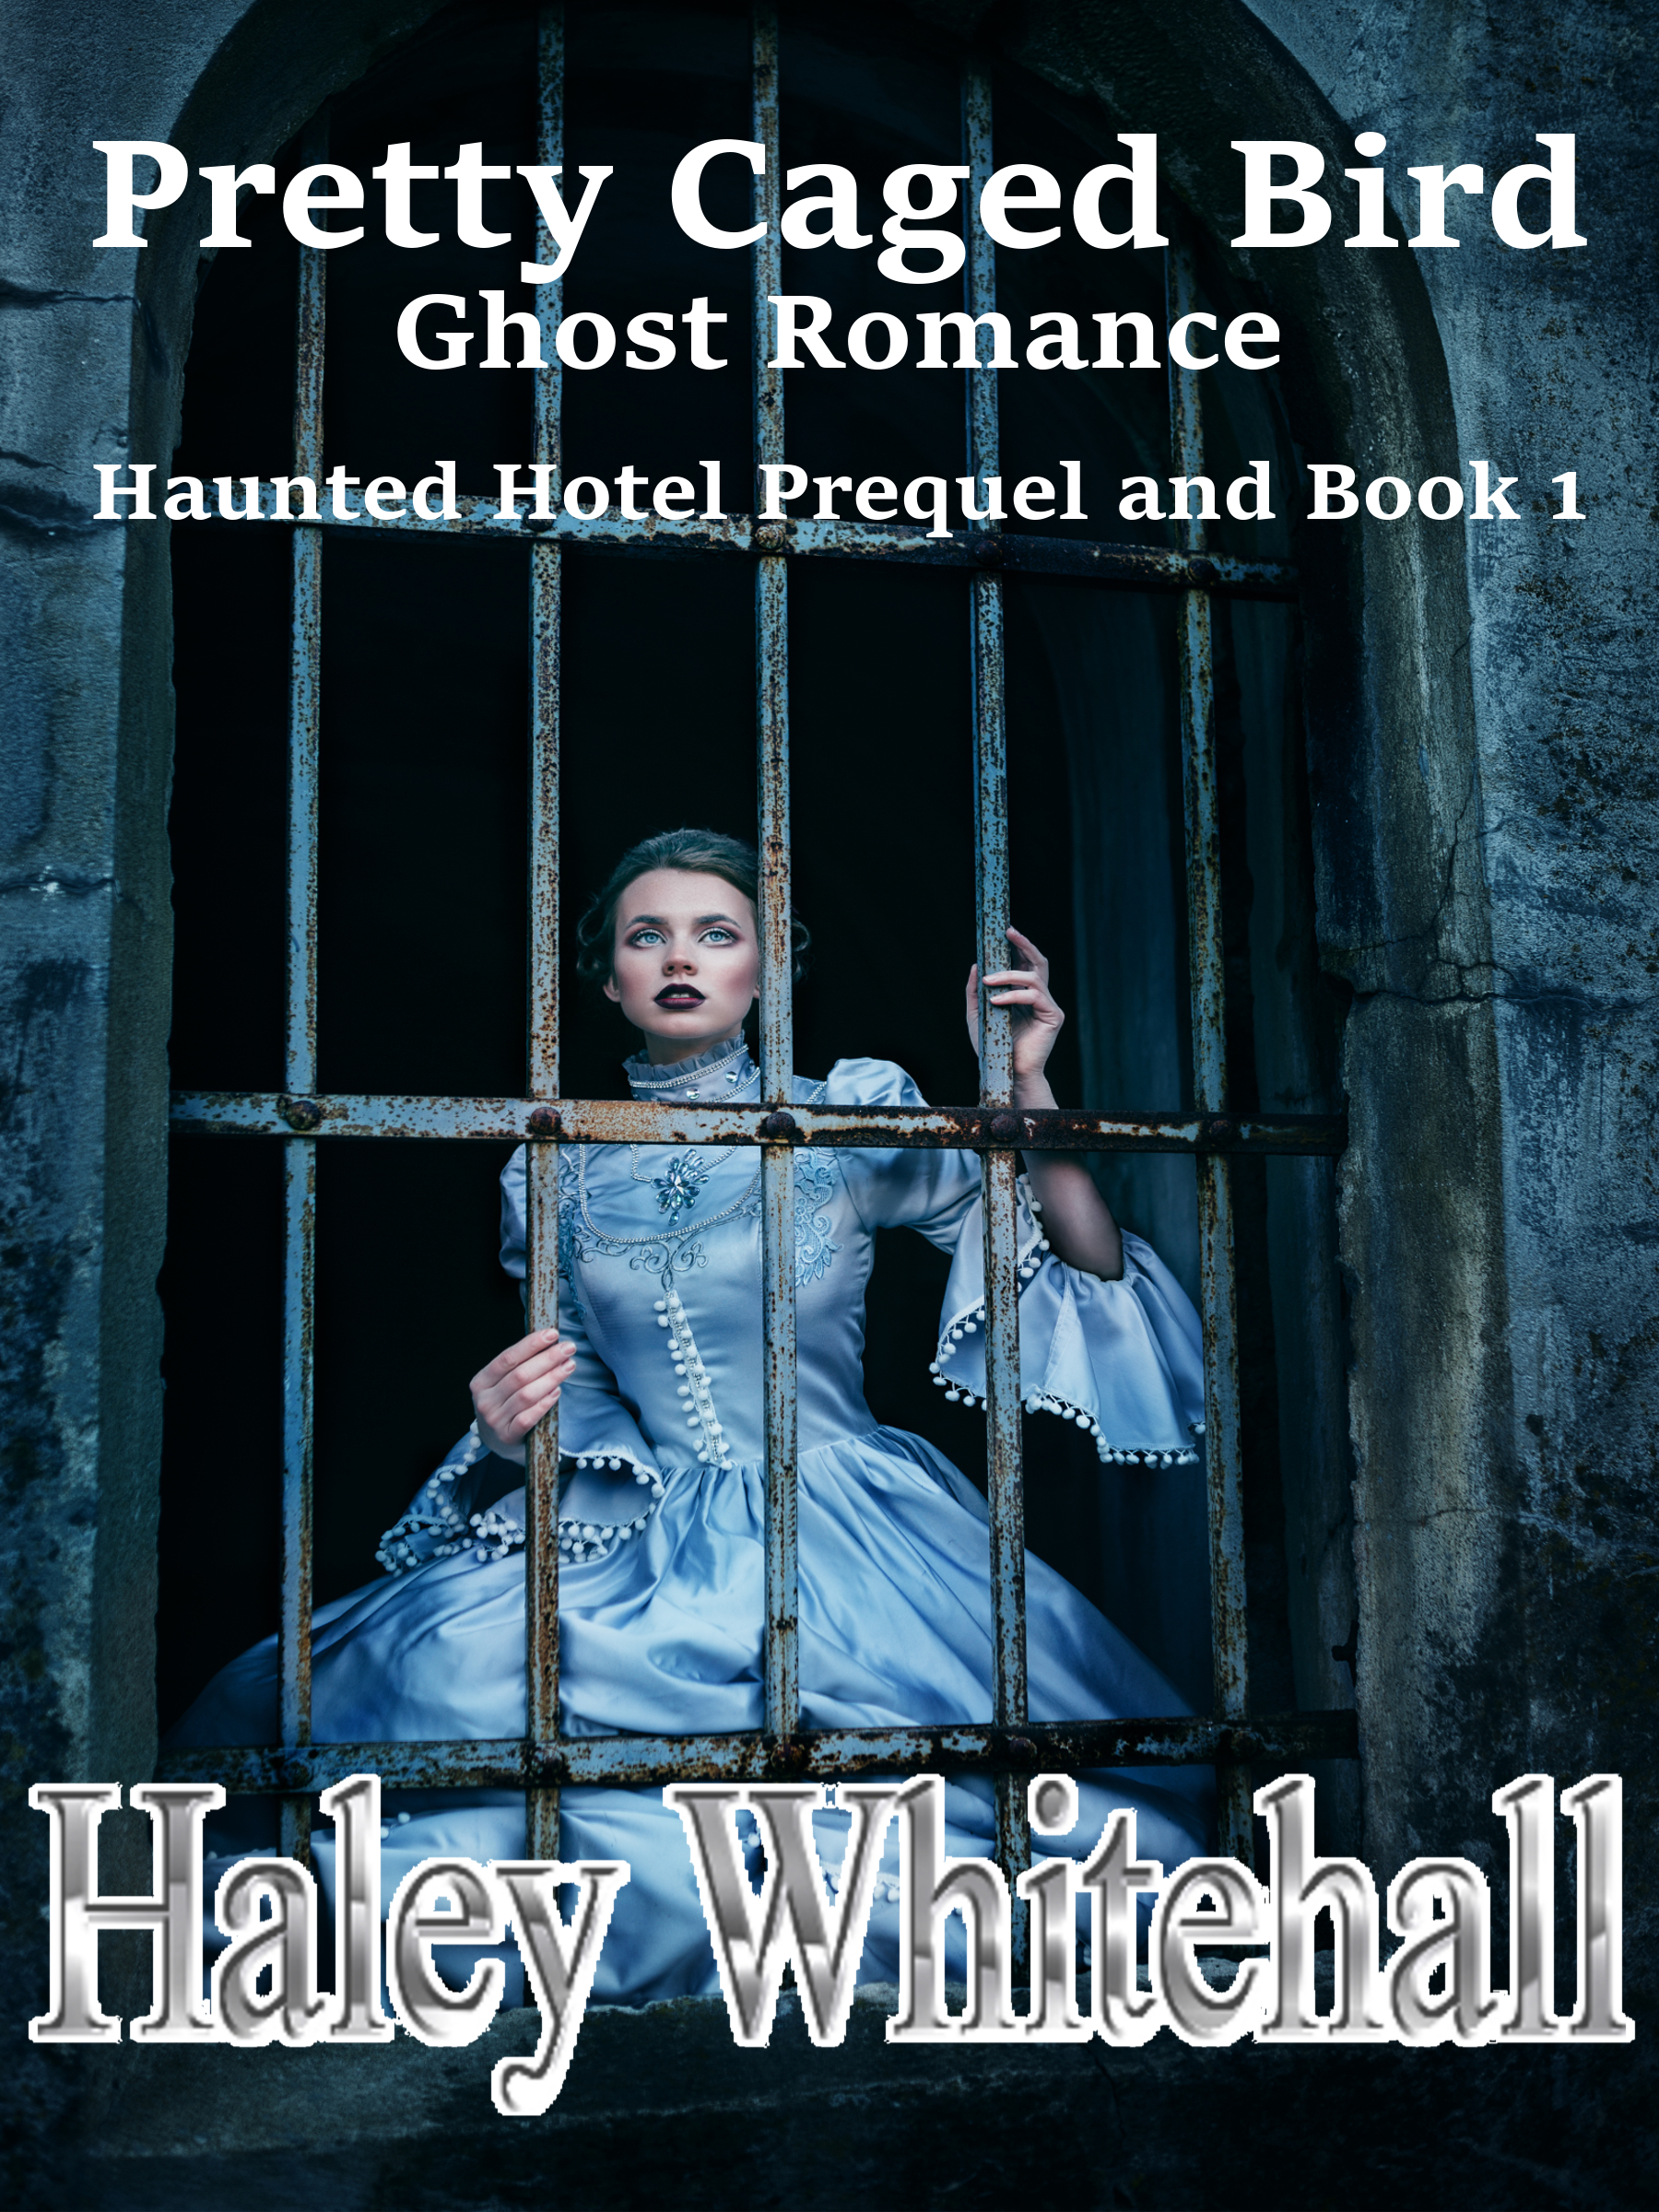 Pretty Caged Bird (Ghost Romance): Haunted Hotel Prequel and Book 1 Haley Whitehall